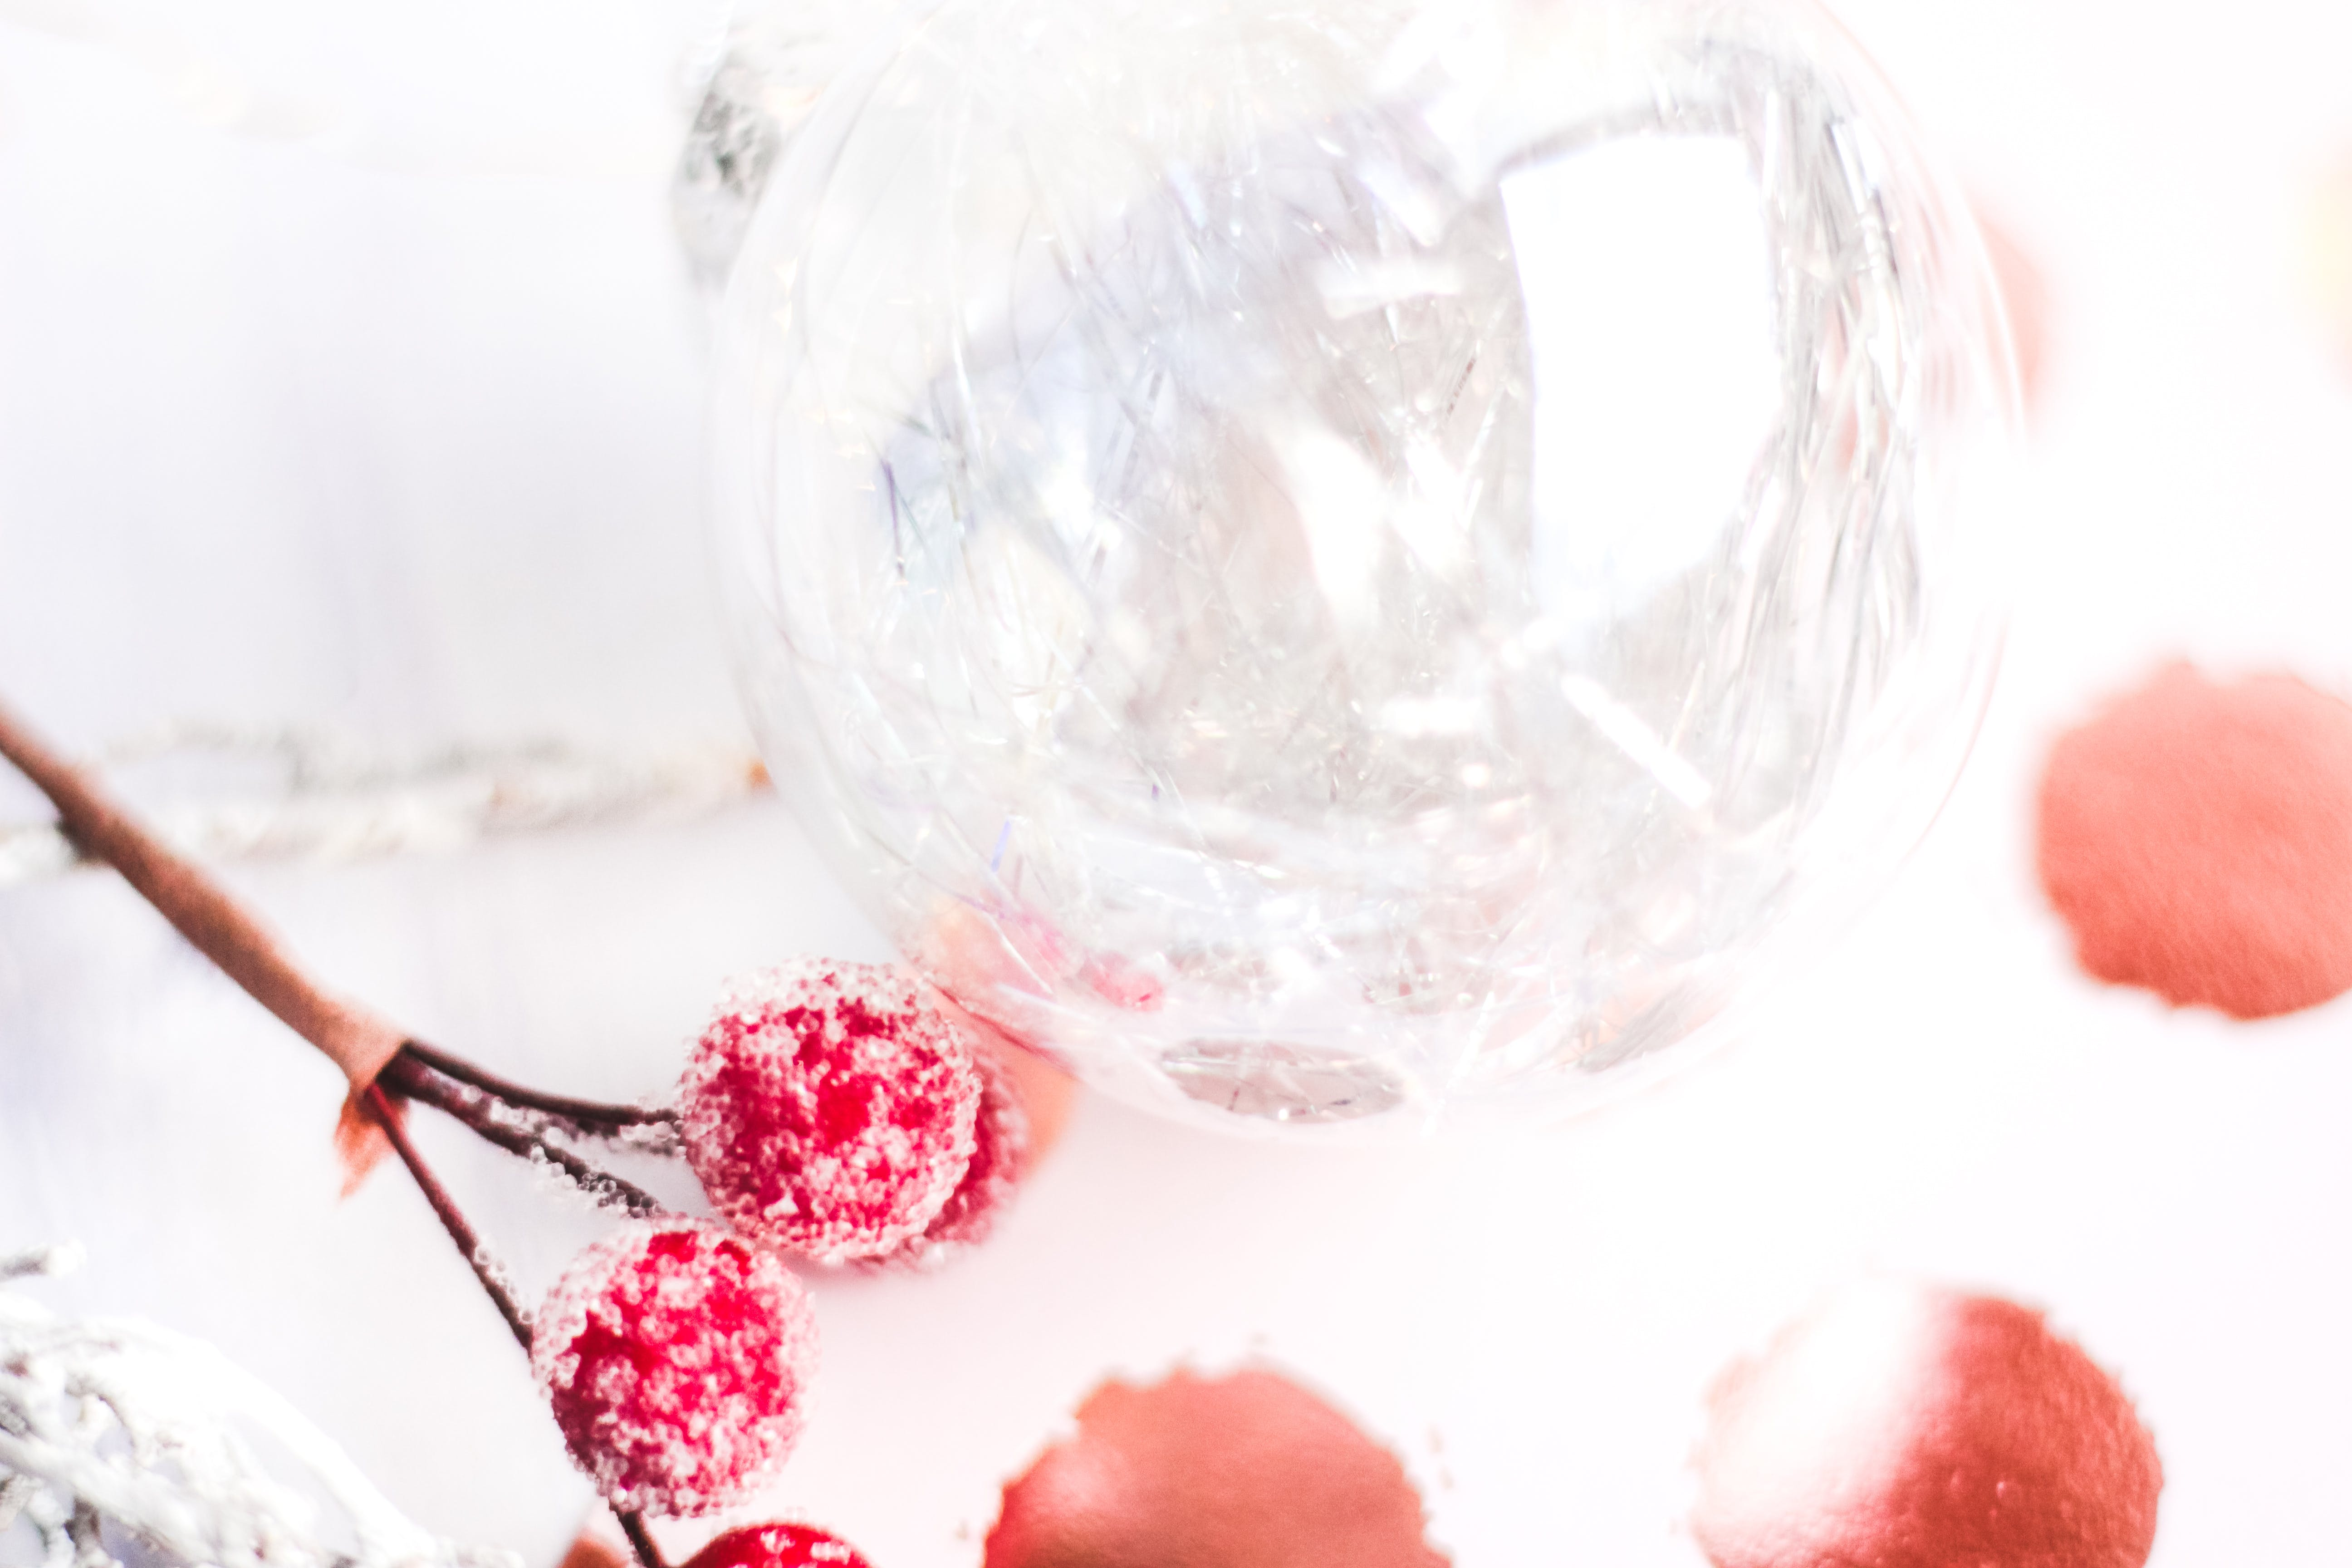 Selective Focus Photography of Frost Covered Red Cherries